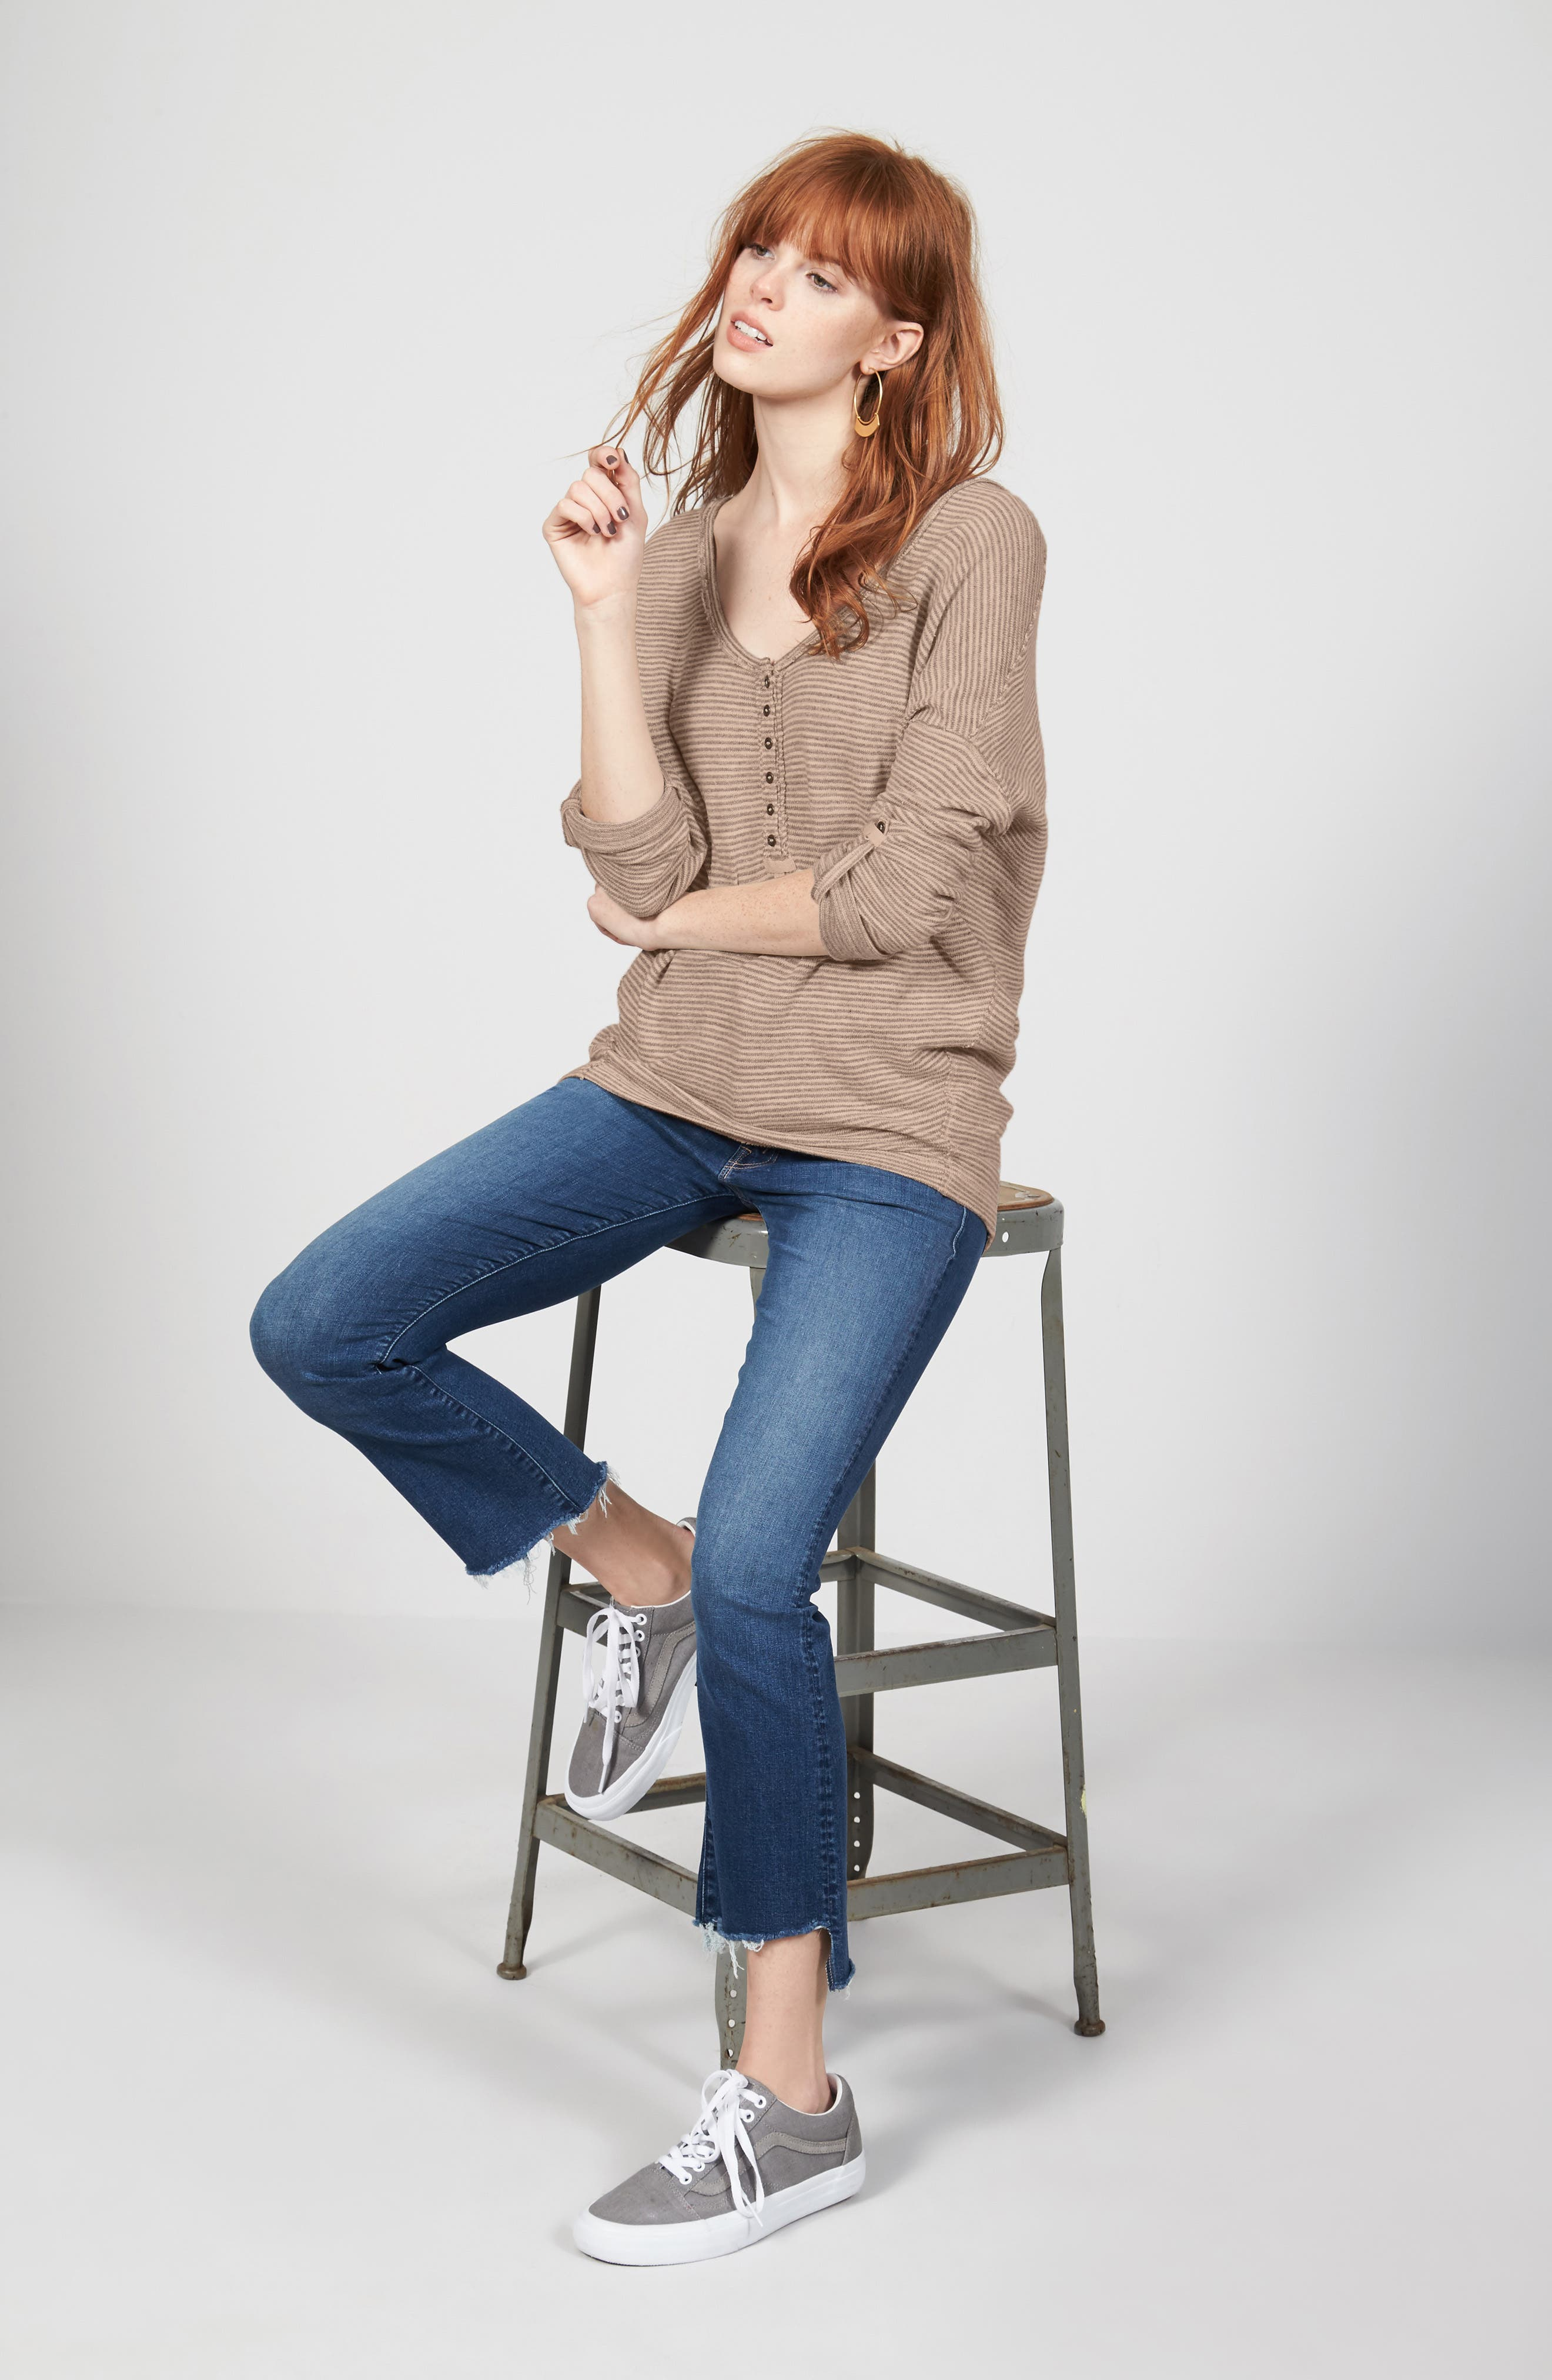 Free People Tee & MOTHER Jeans Outfit with Accessories